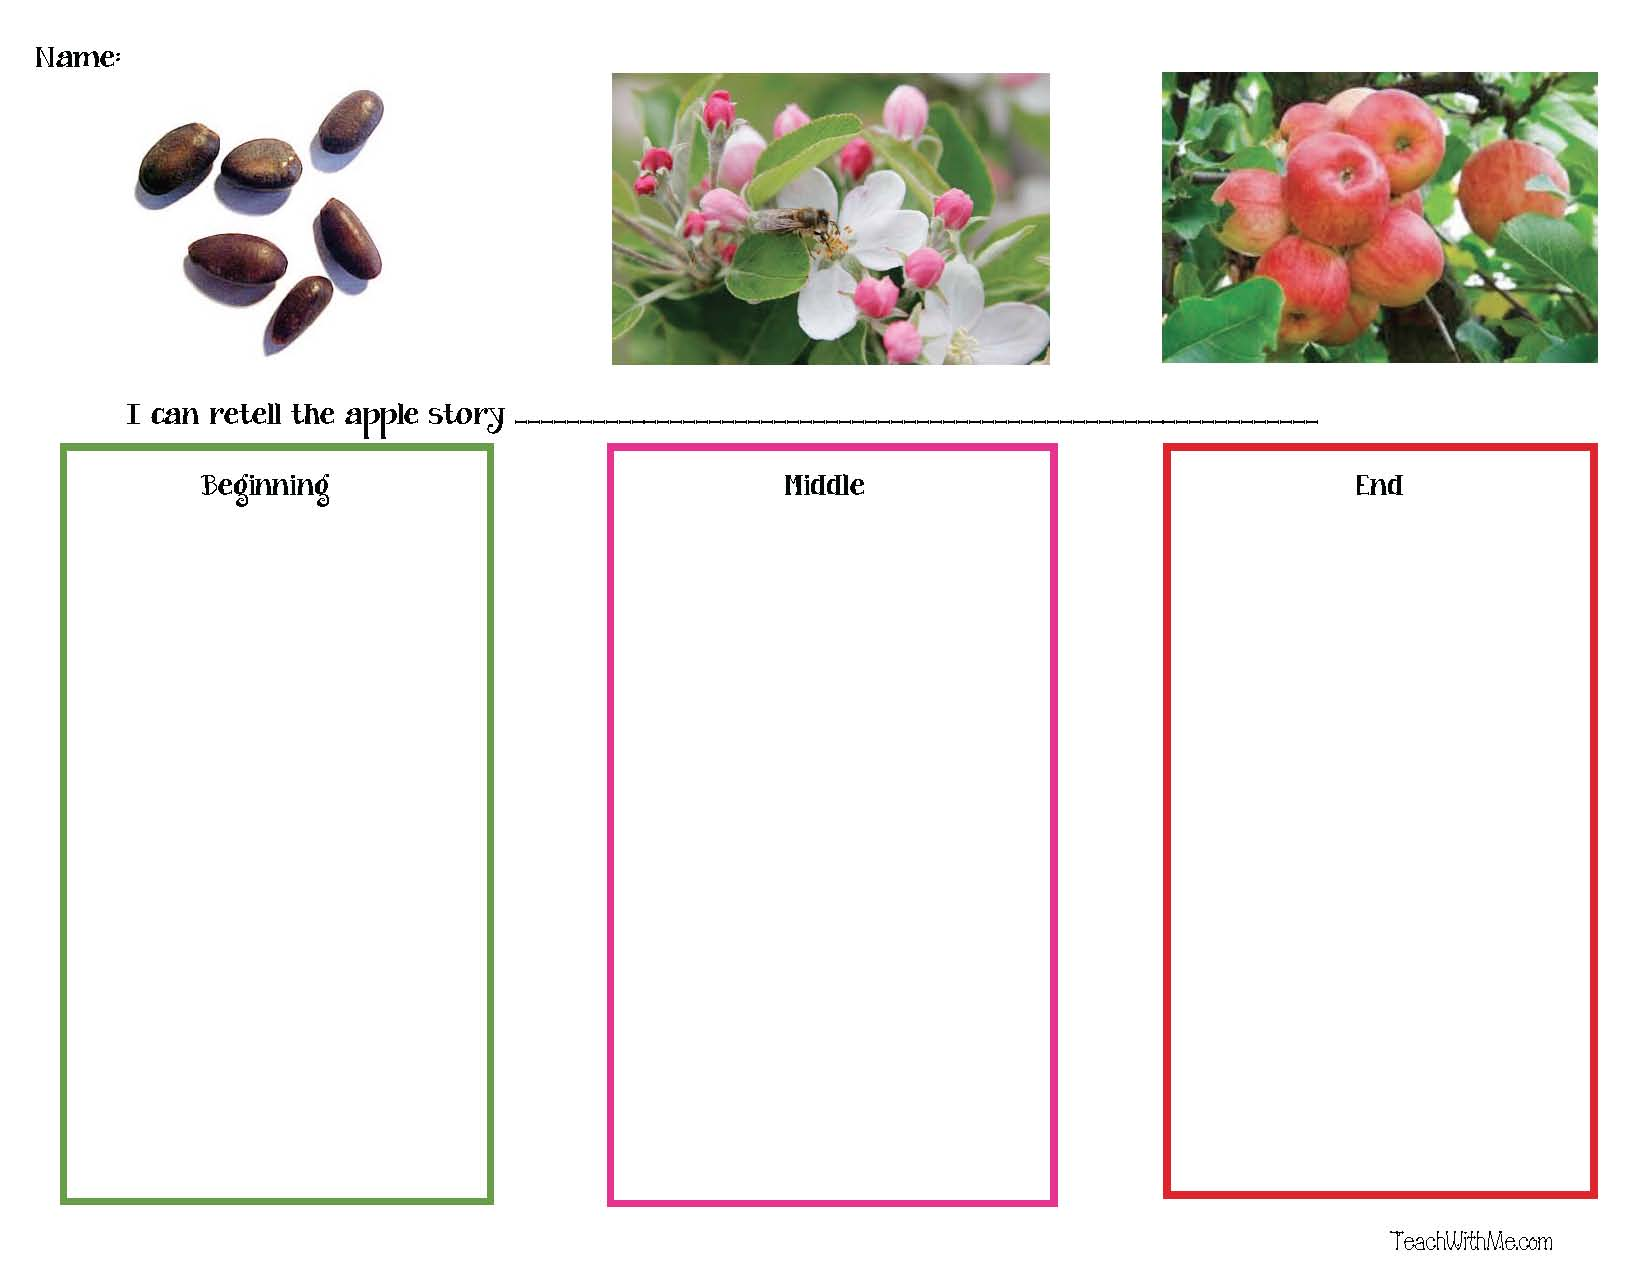 free graphic organizers, graphic organizers, apple activities, pumpkin activities, common core apples, common core pumpkins, beginning middle and end activities, retelling a story activities